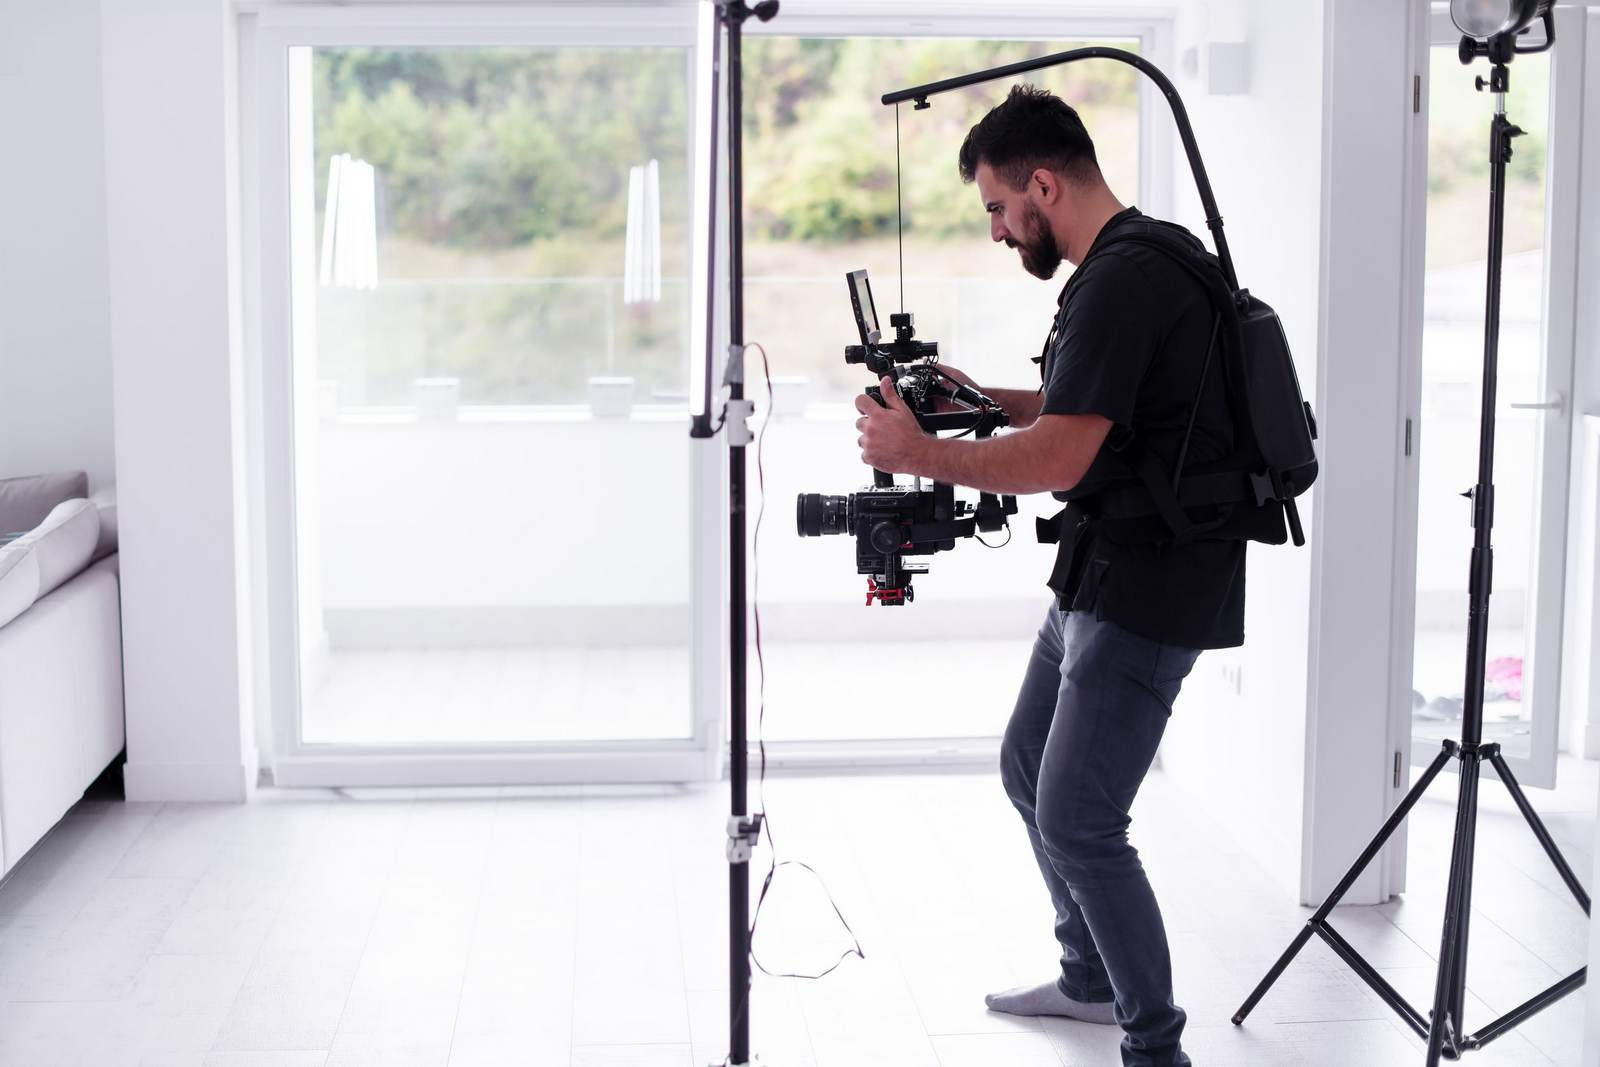 Image of a videographer shooting footage of the interior of a house.